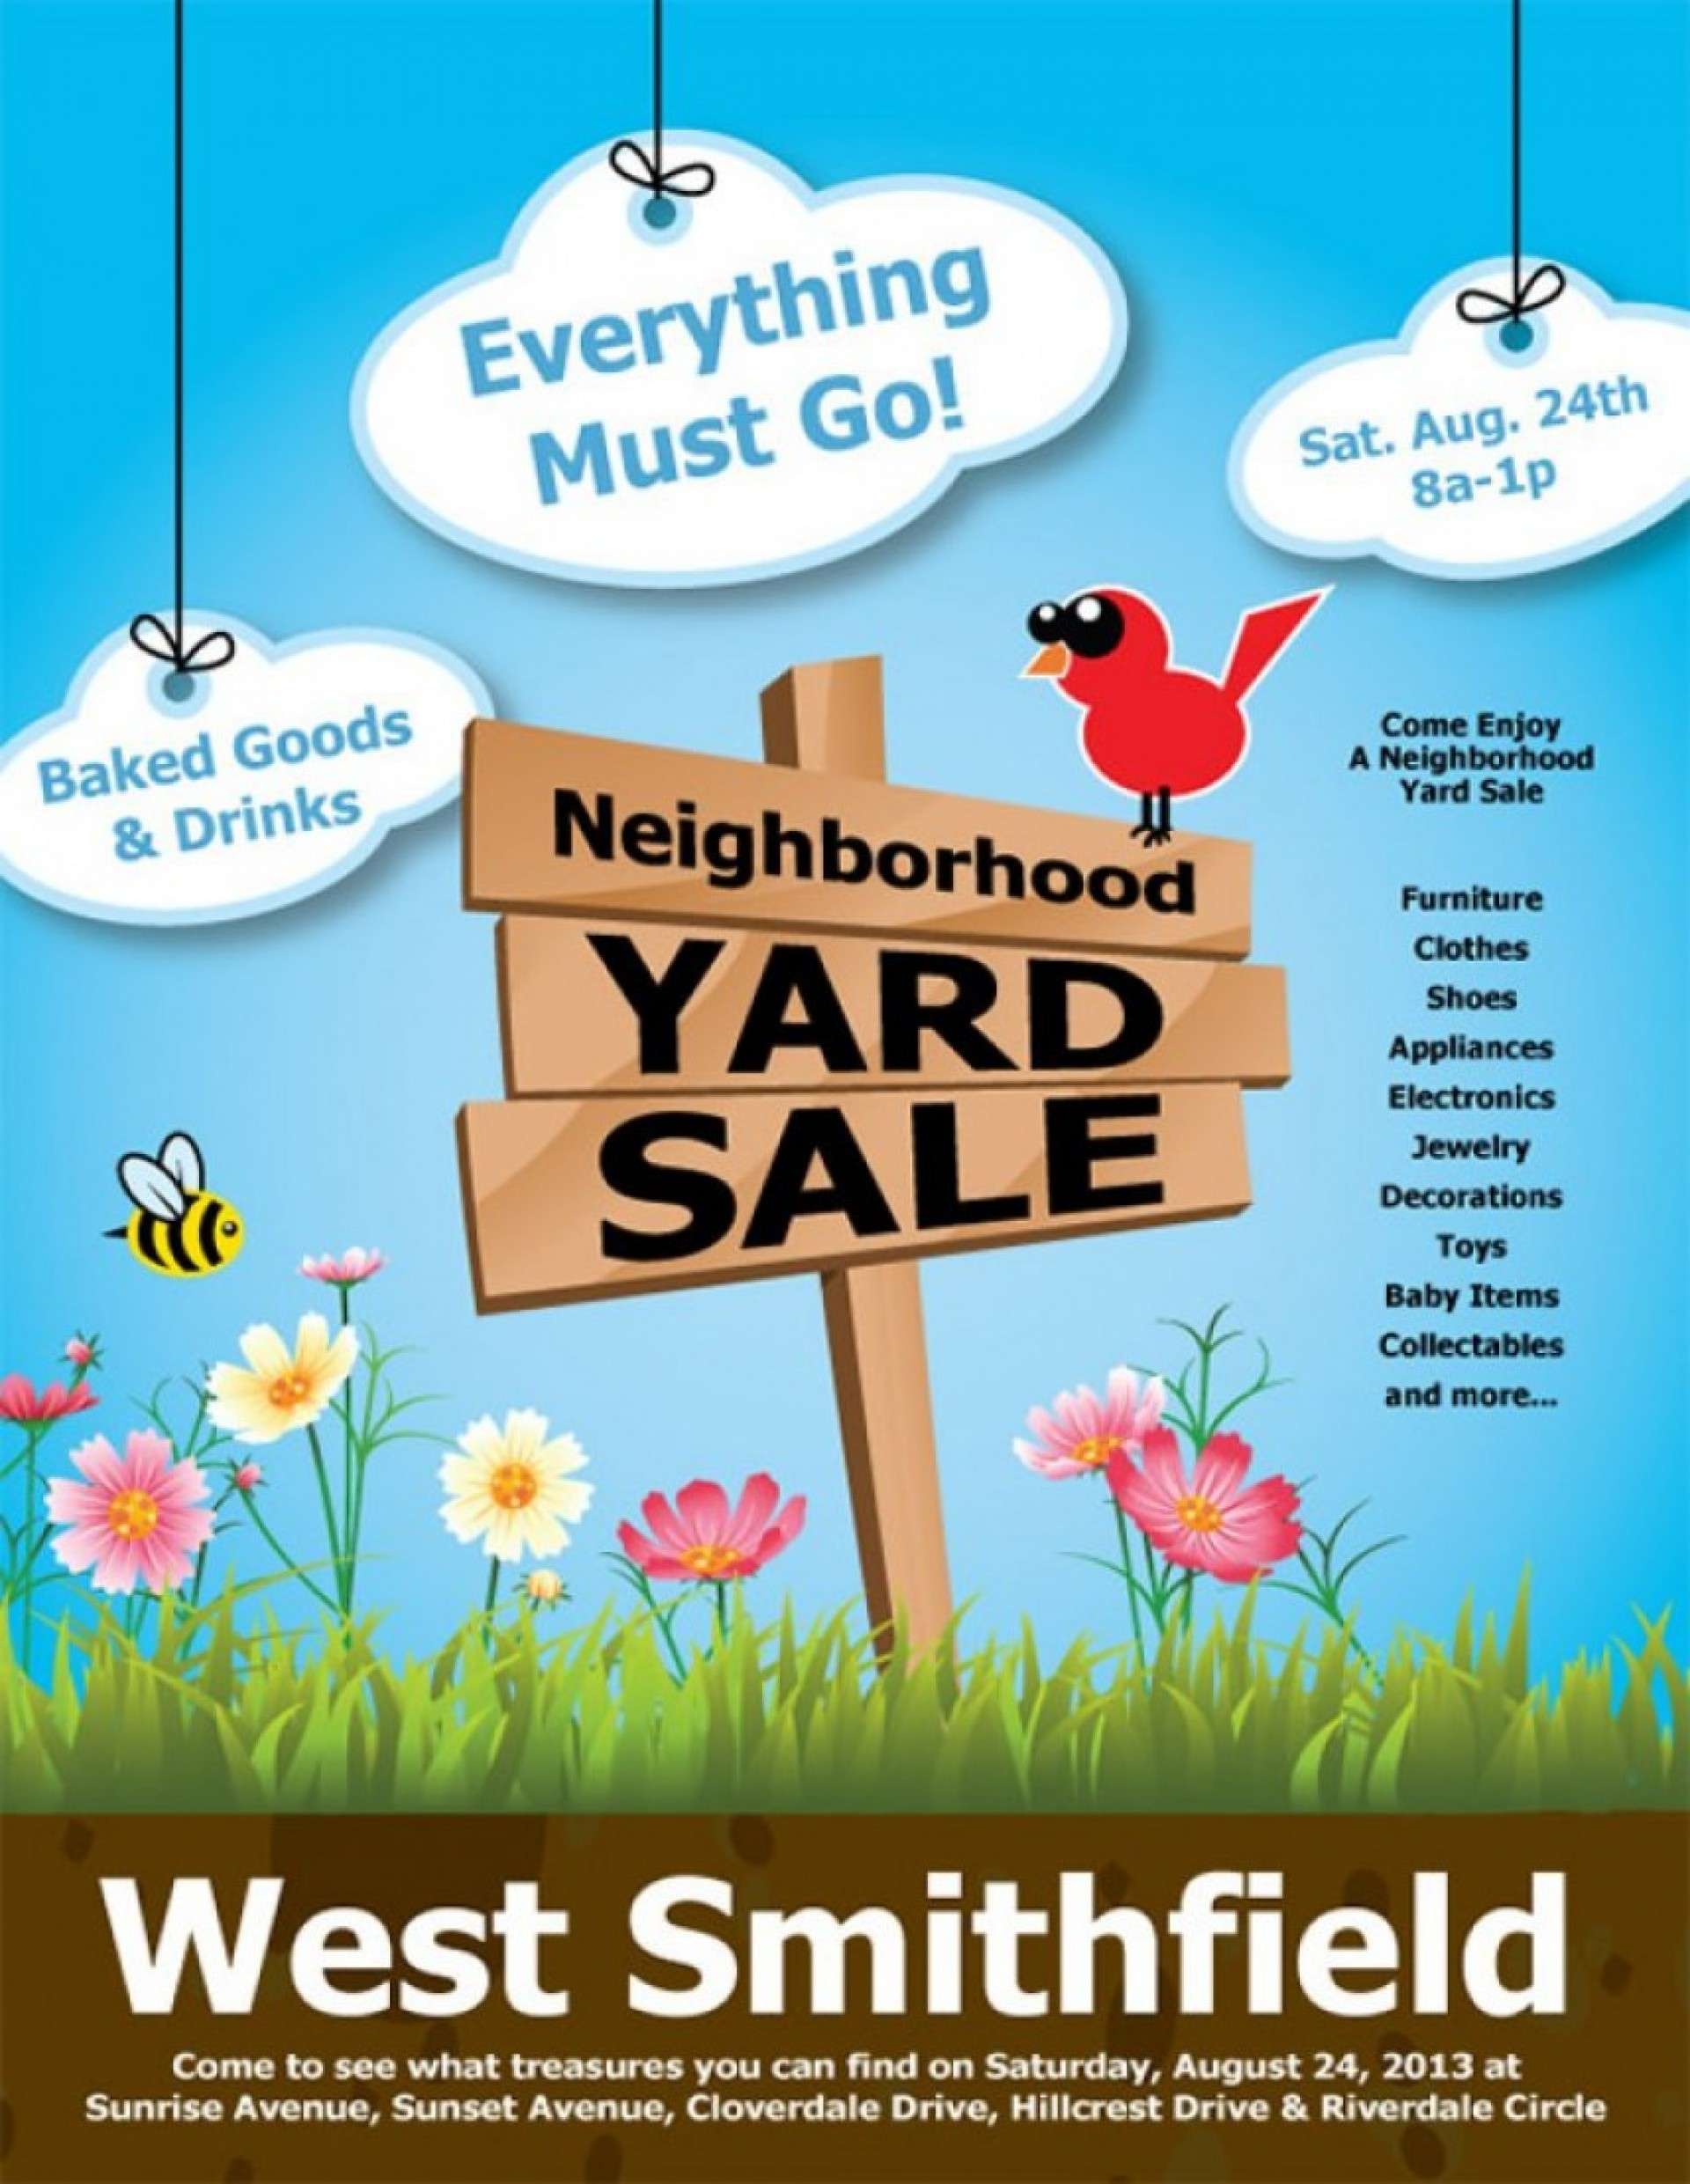 030 Template Ideas Yard Sale Flyer Free Clip Art Stupendous.